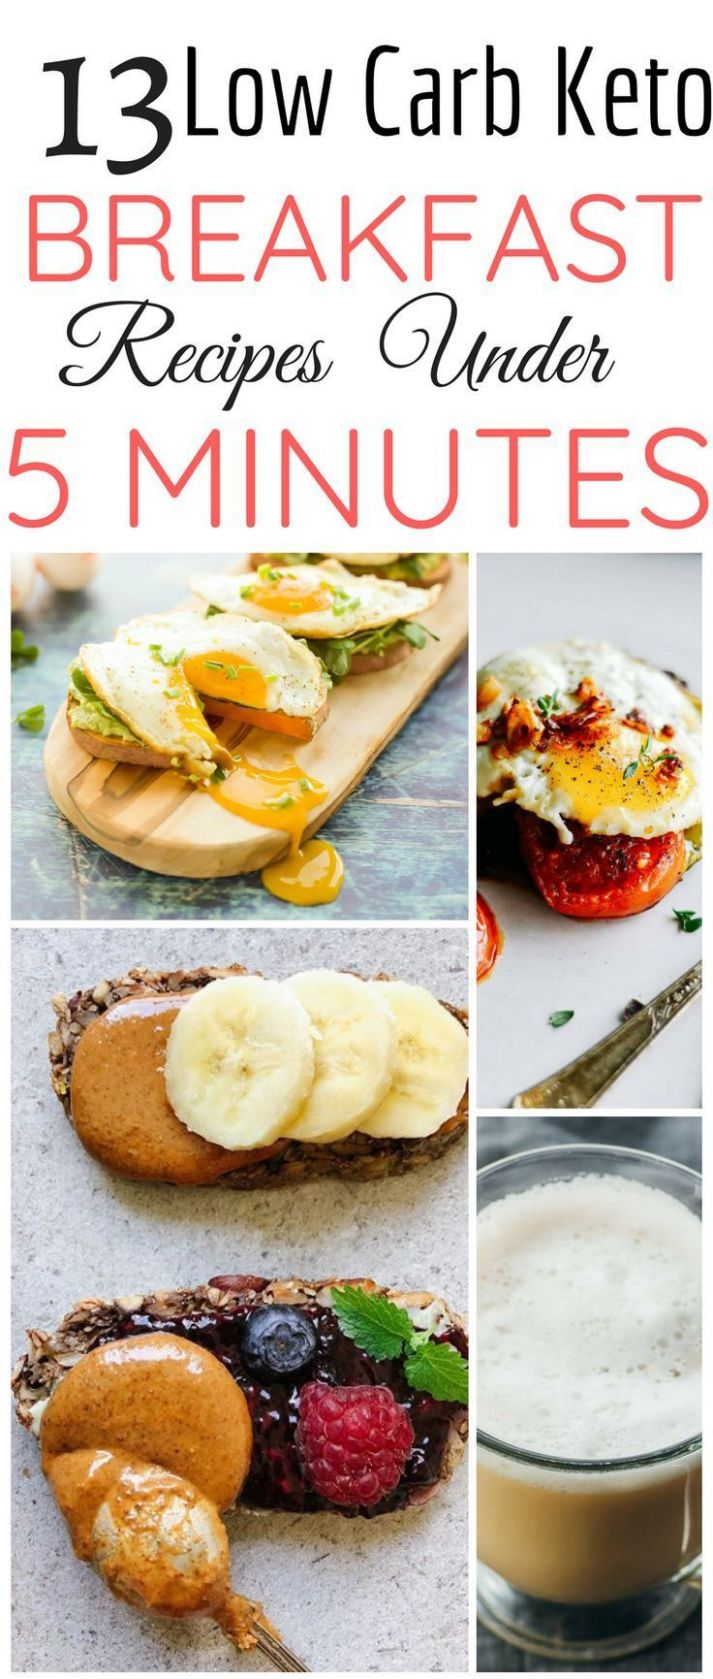 9 keto breakfast recipes under 9 minutes for busy people. These ..